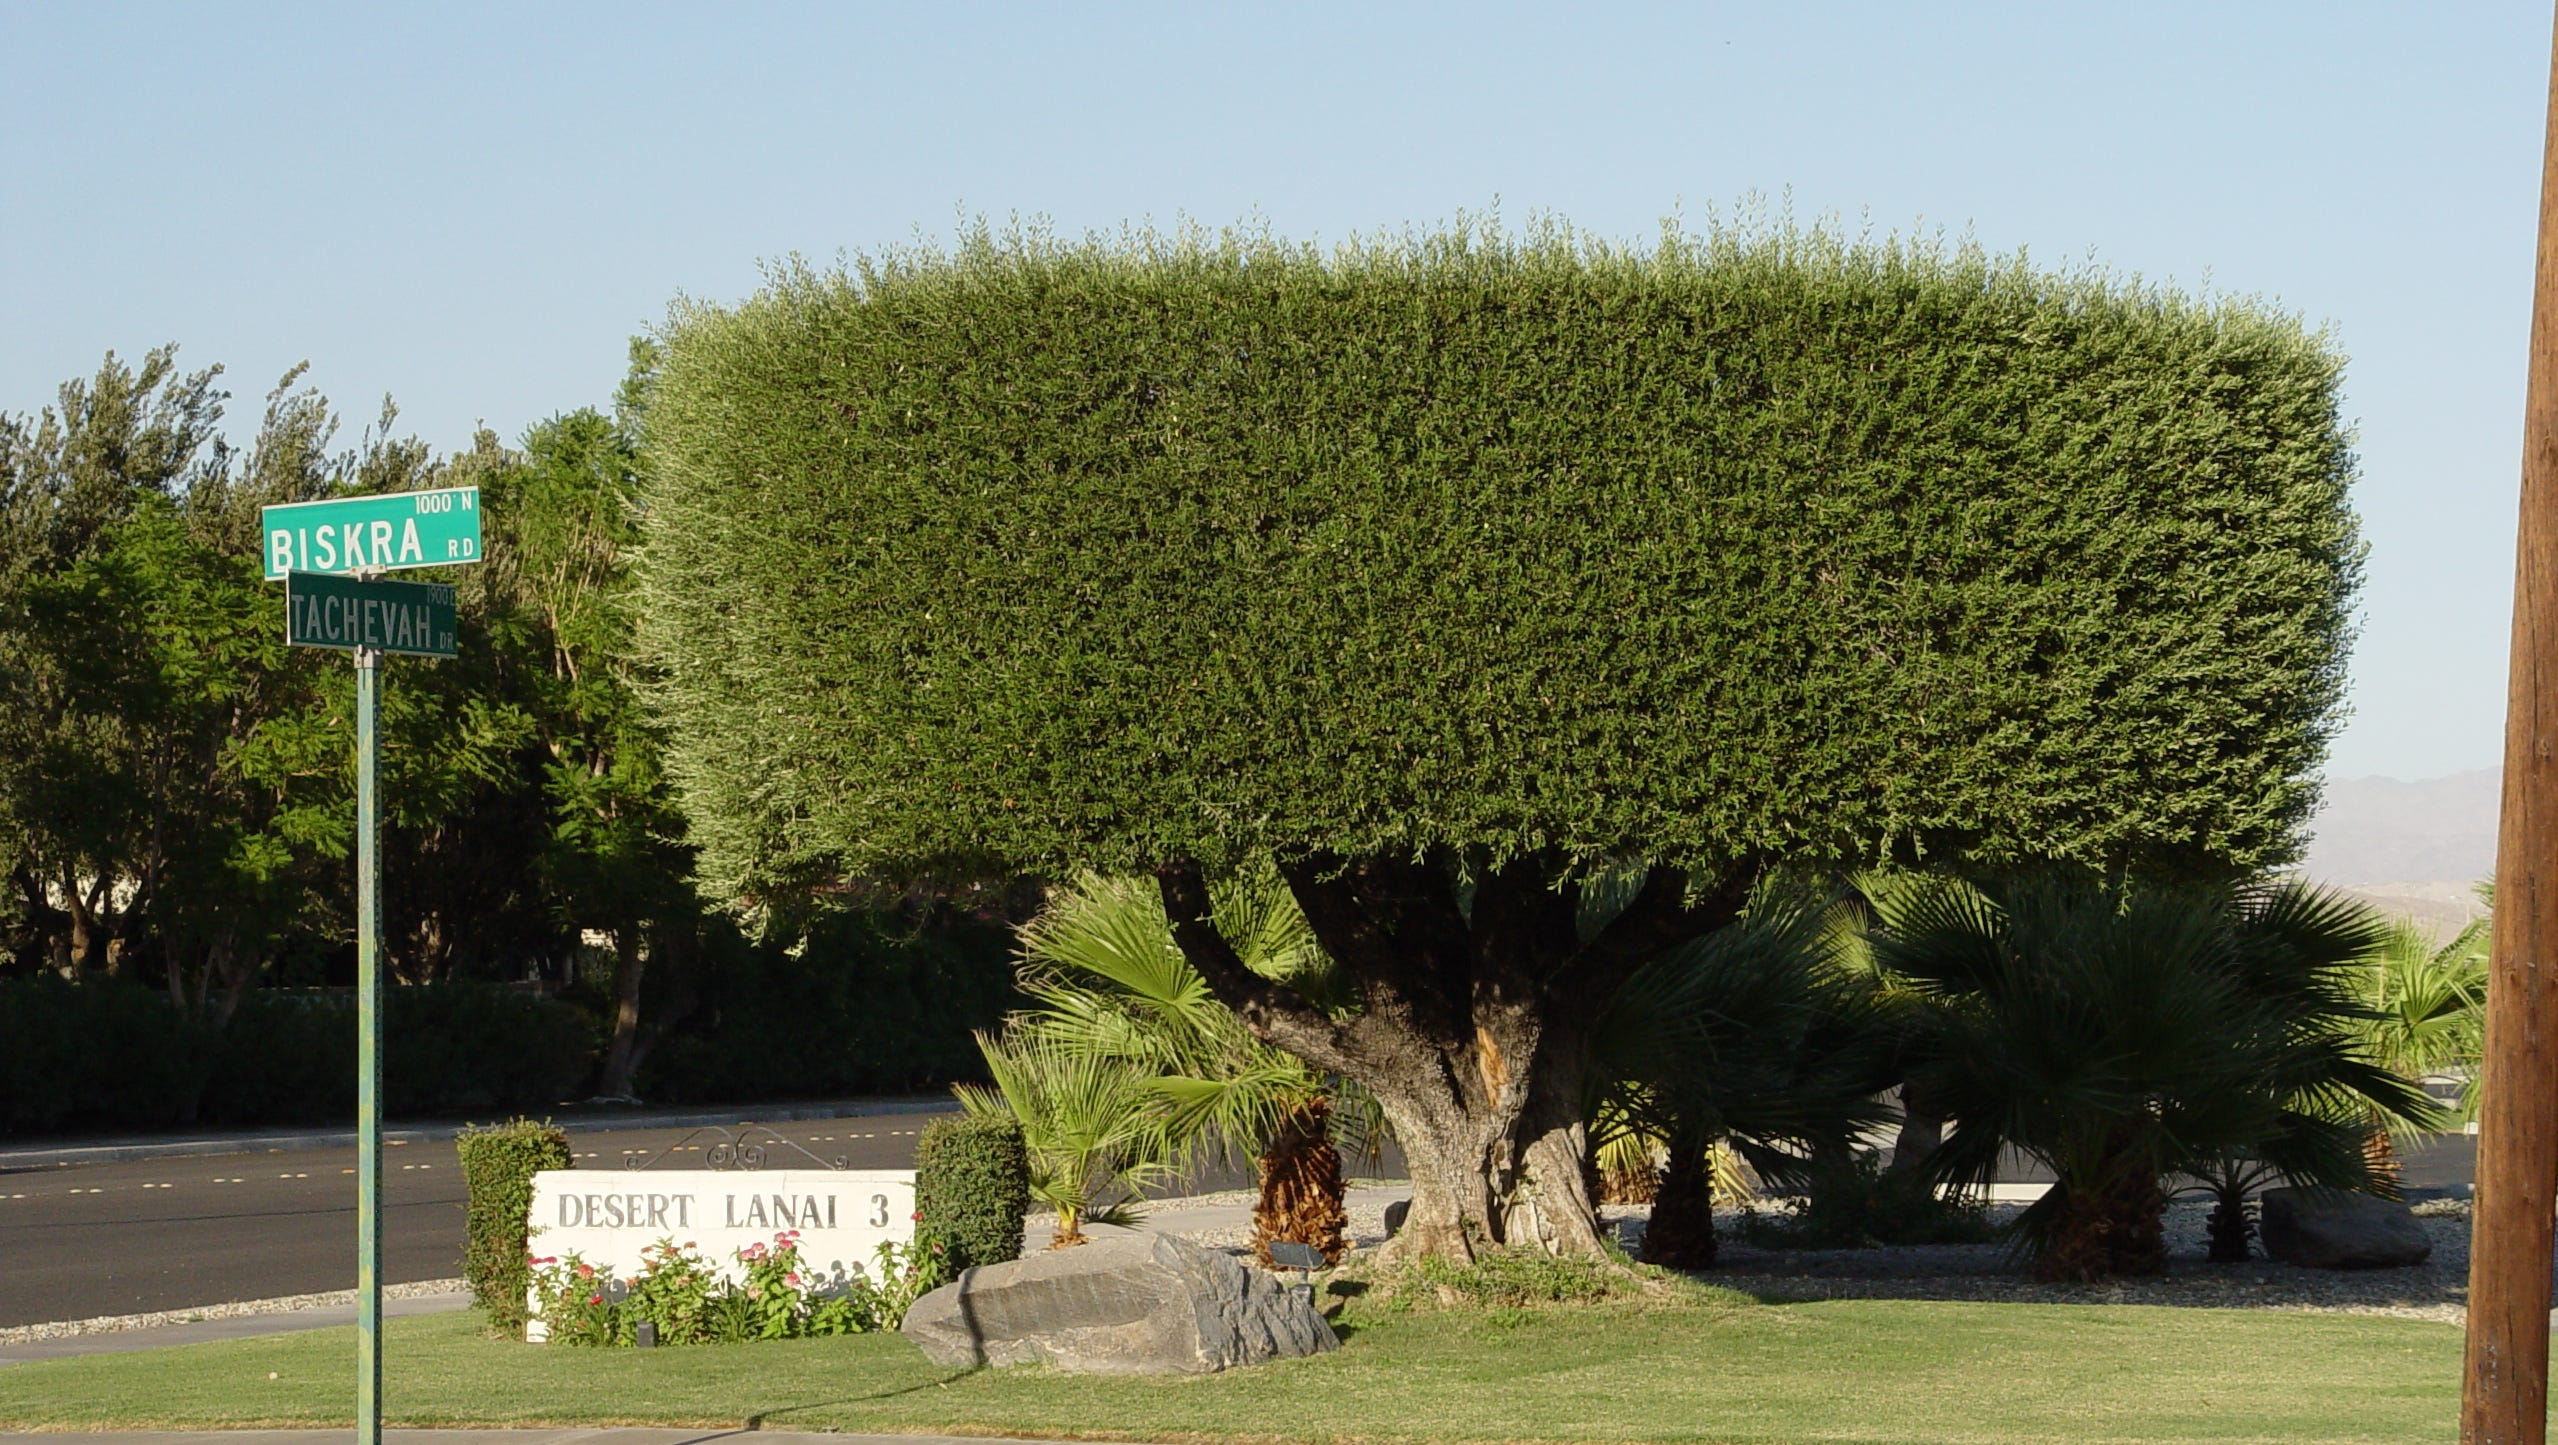 replacing golf courses with olive orchards in palm springs is a bad idea here s why olive orchards in palm springs